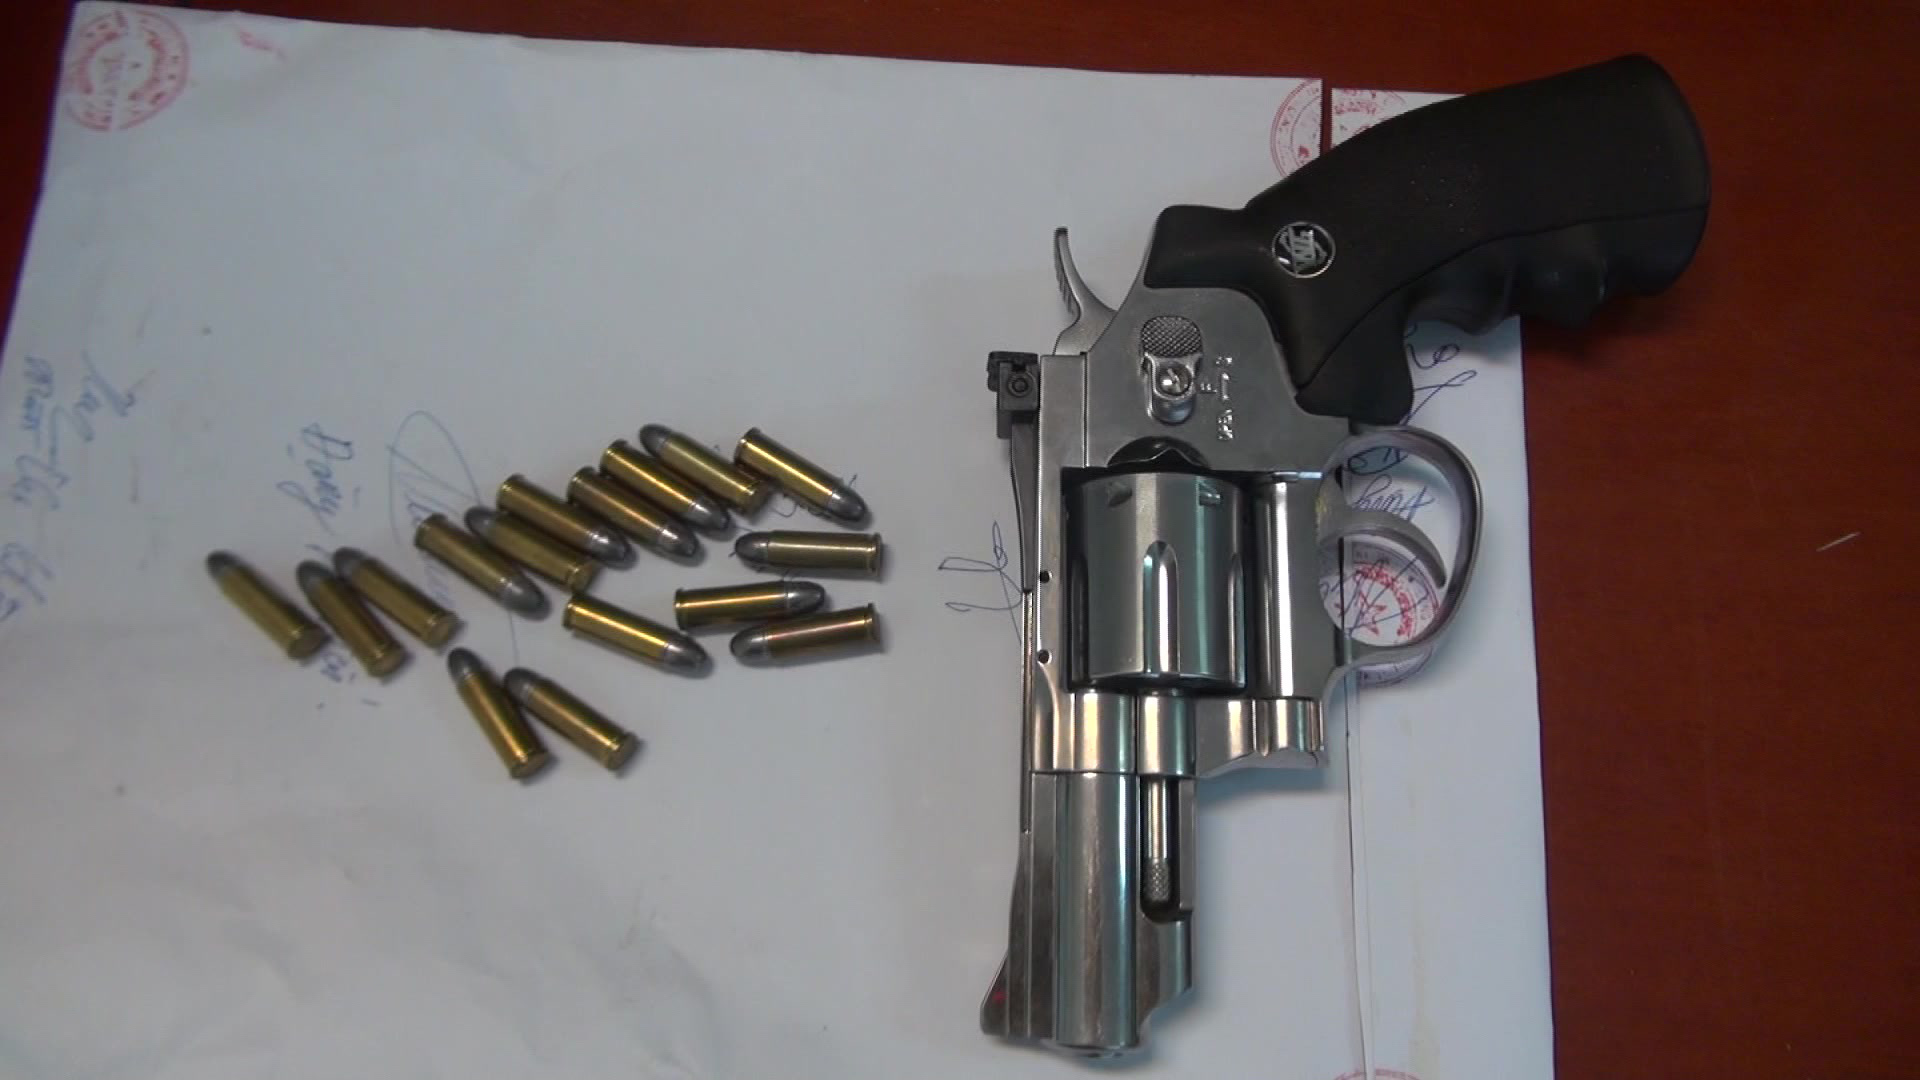 A pistol and bullets are seized from the residence of drug suspect Tran Hoai Nam in Nghe An Province, Vietnam. Photo: Dinh Hop / Tuoi Tre